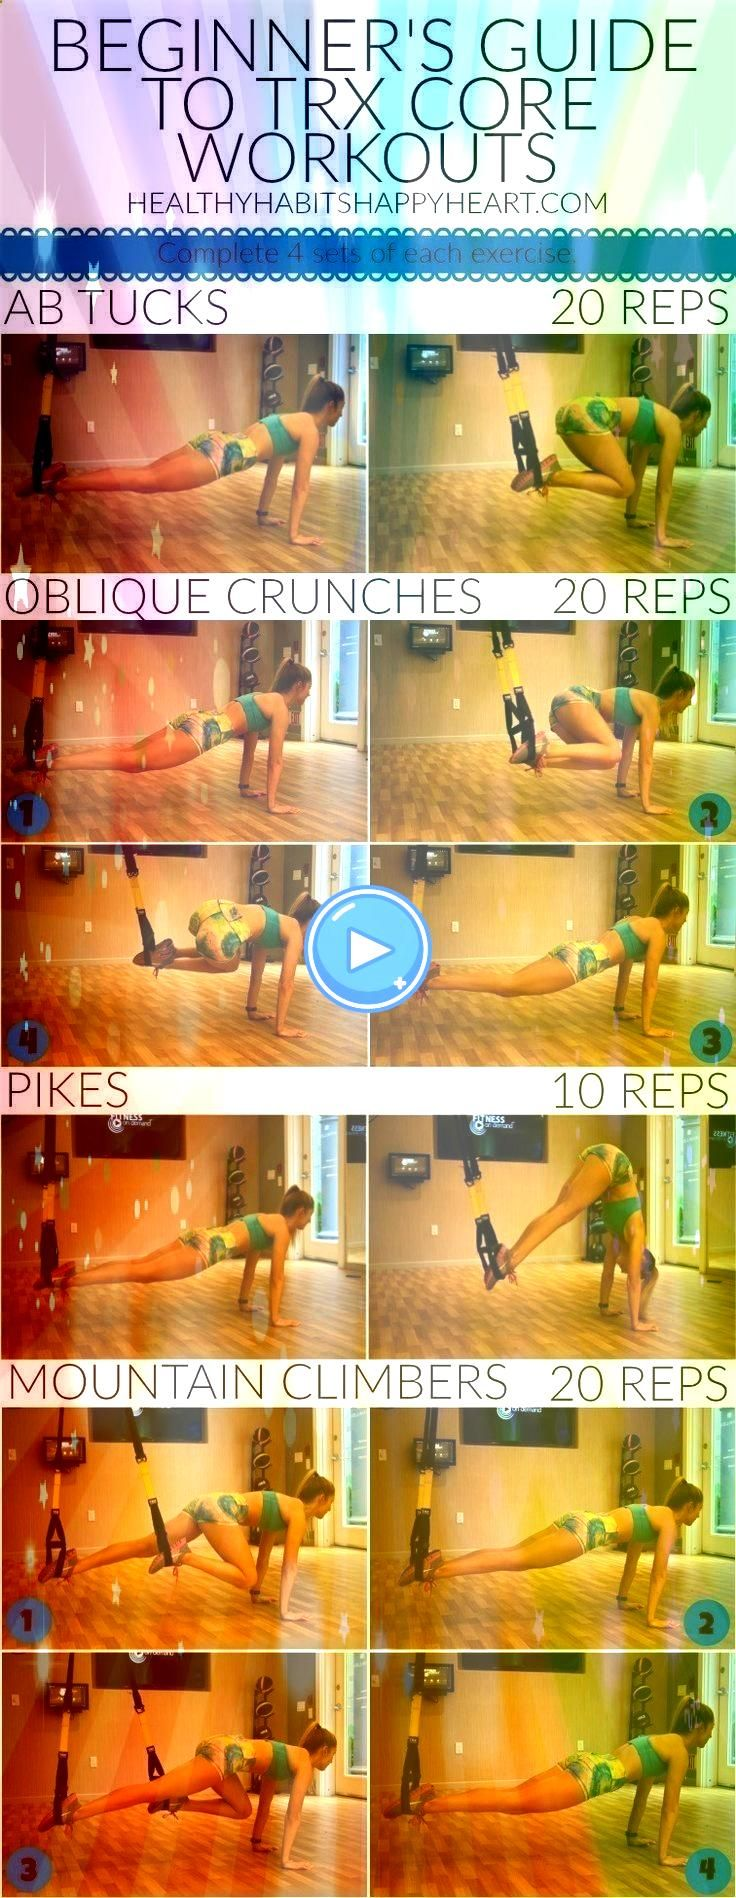 workout routine Hard Muscle ripped muscular Abs exercise sculpted upper body pull up program core workout routine Hard Muscle ripped muscular Abs exercise sculpted upper...